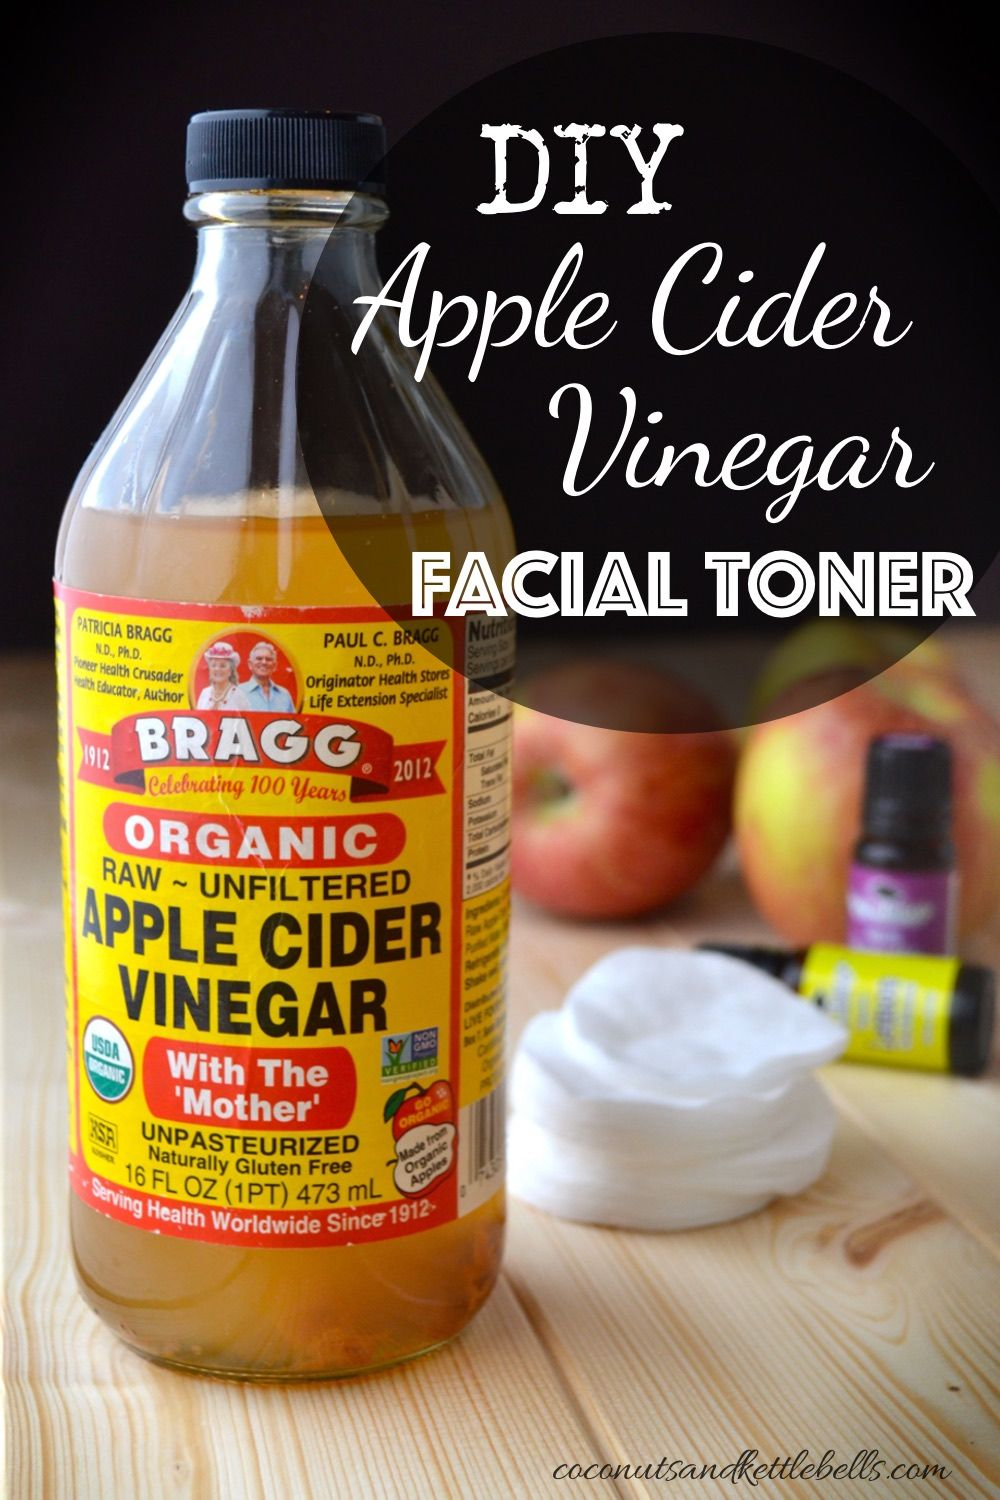 vinager for facials